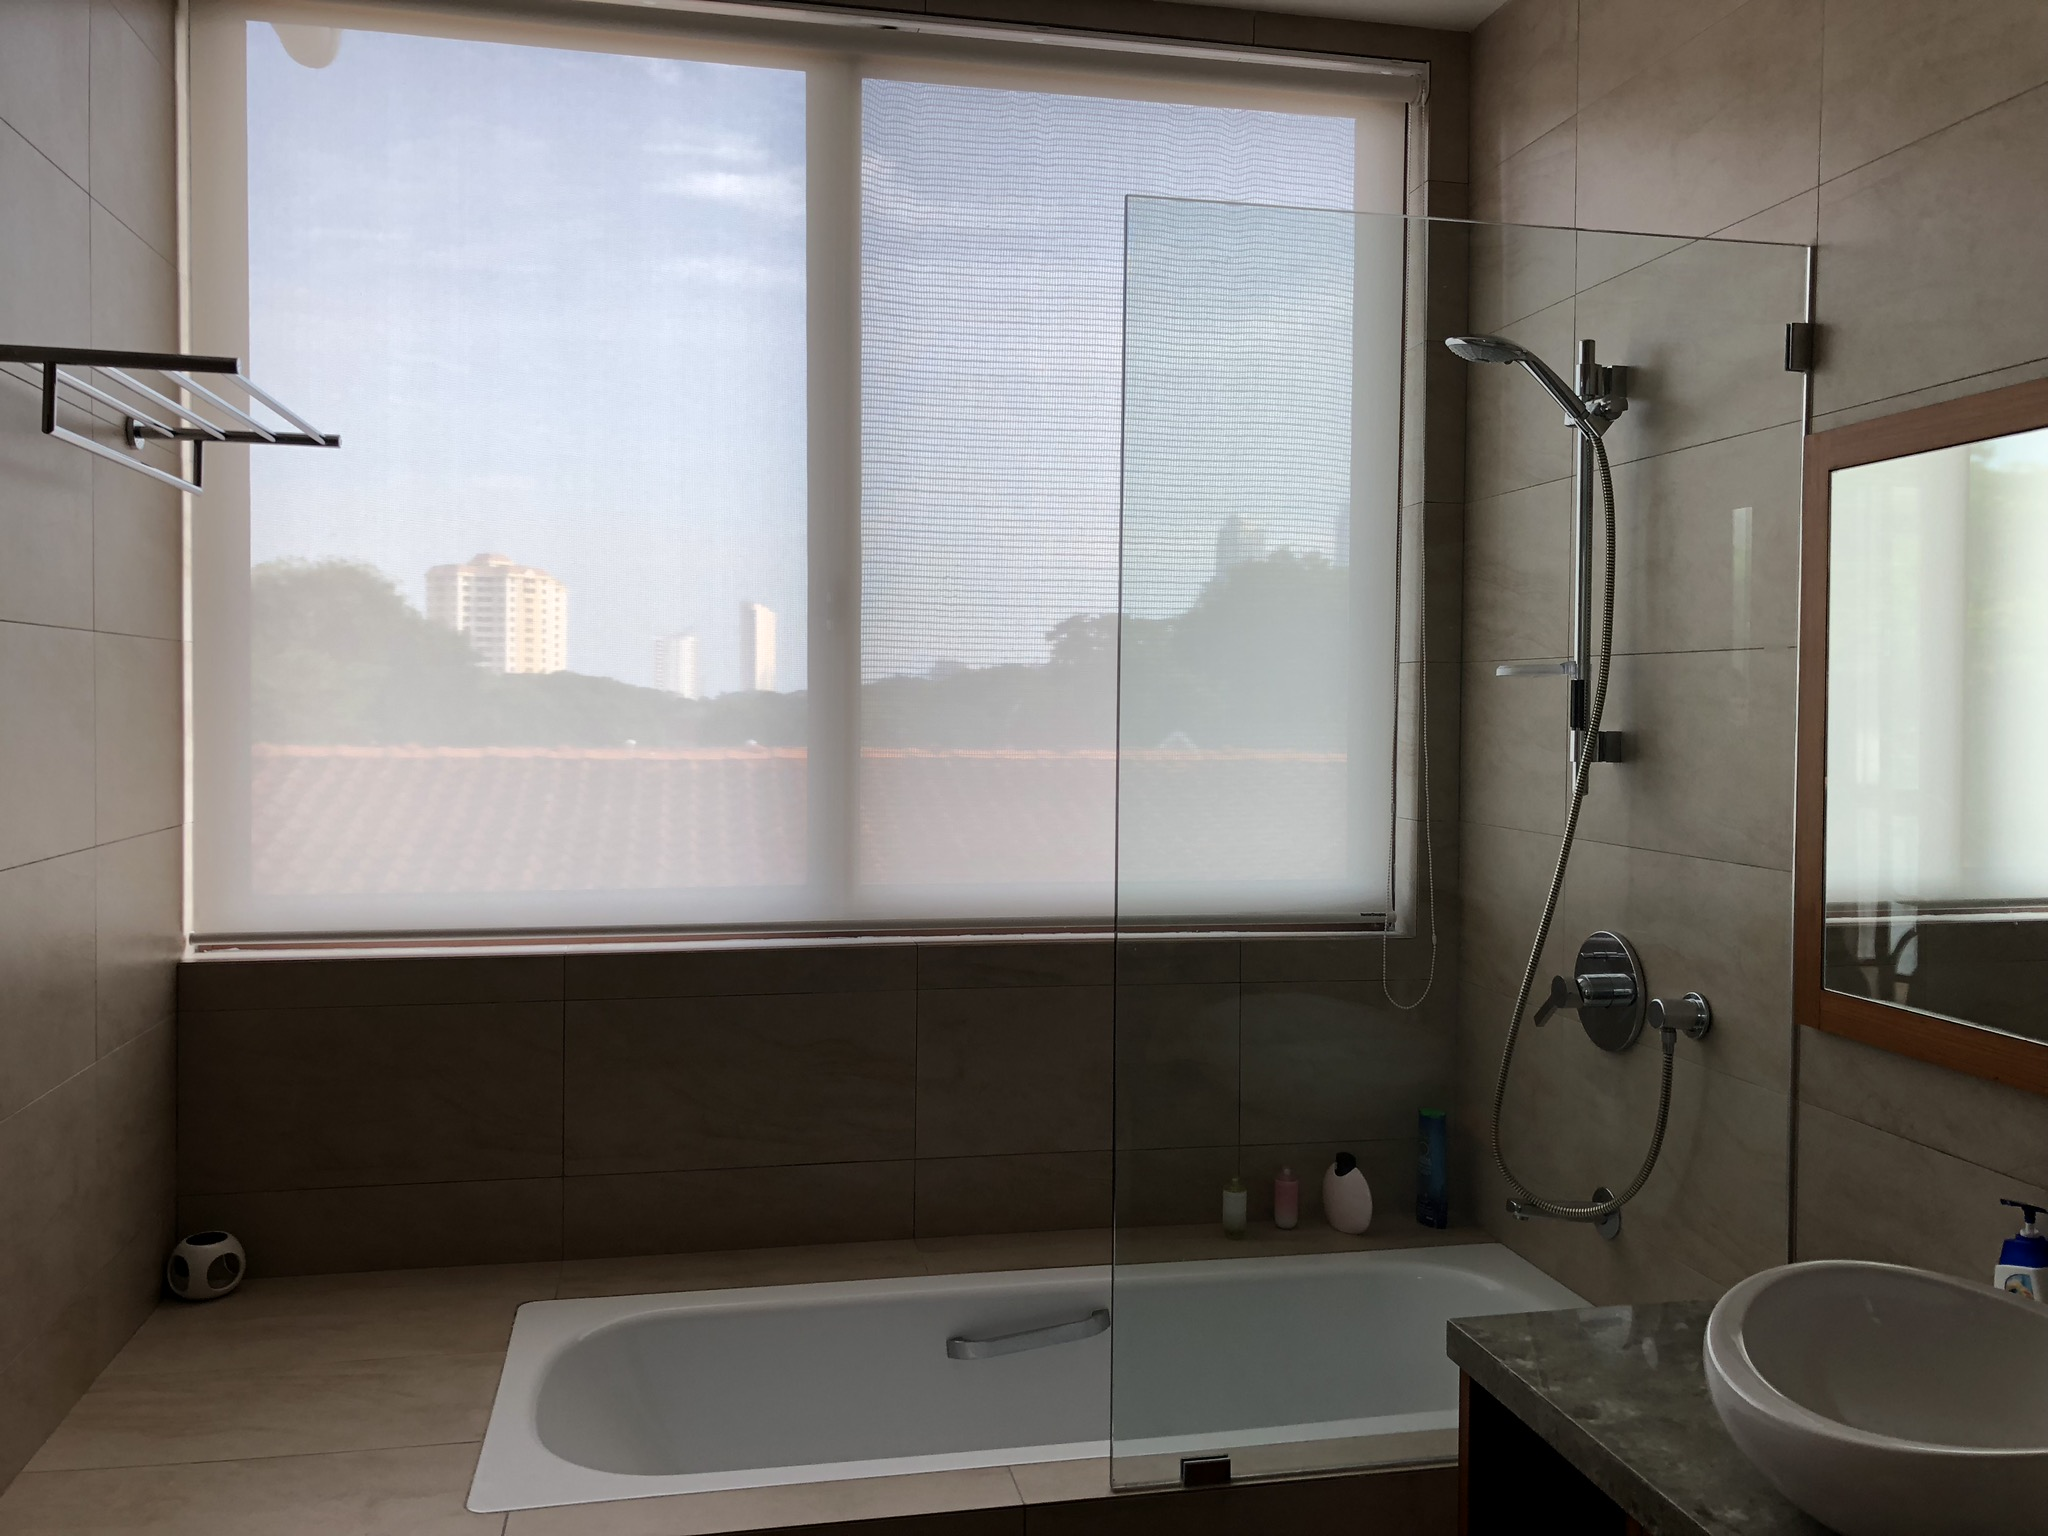 Our marble adjoining bath reflects the sandstone colored hills and catches the bright sun.